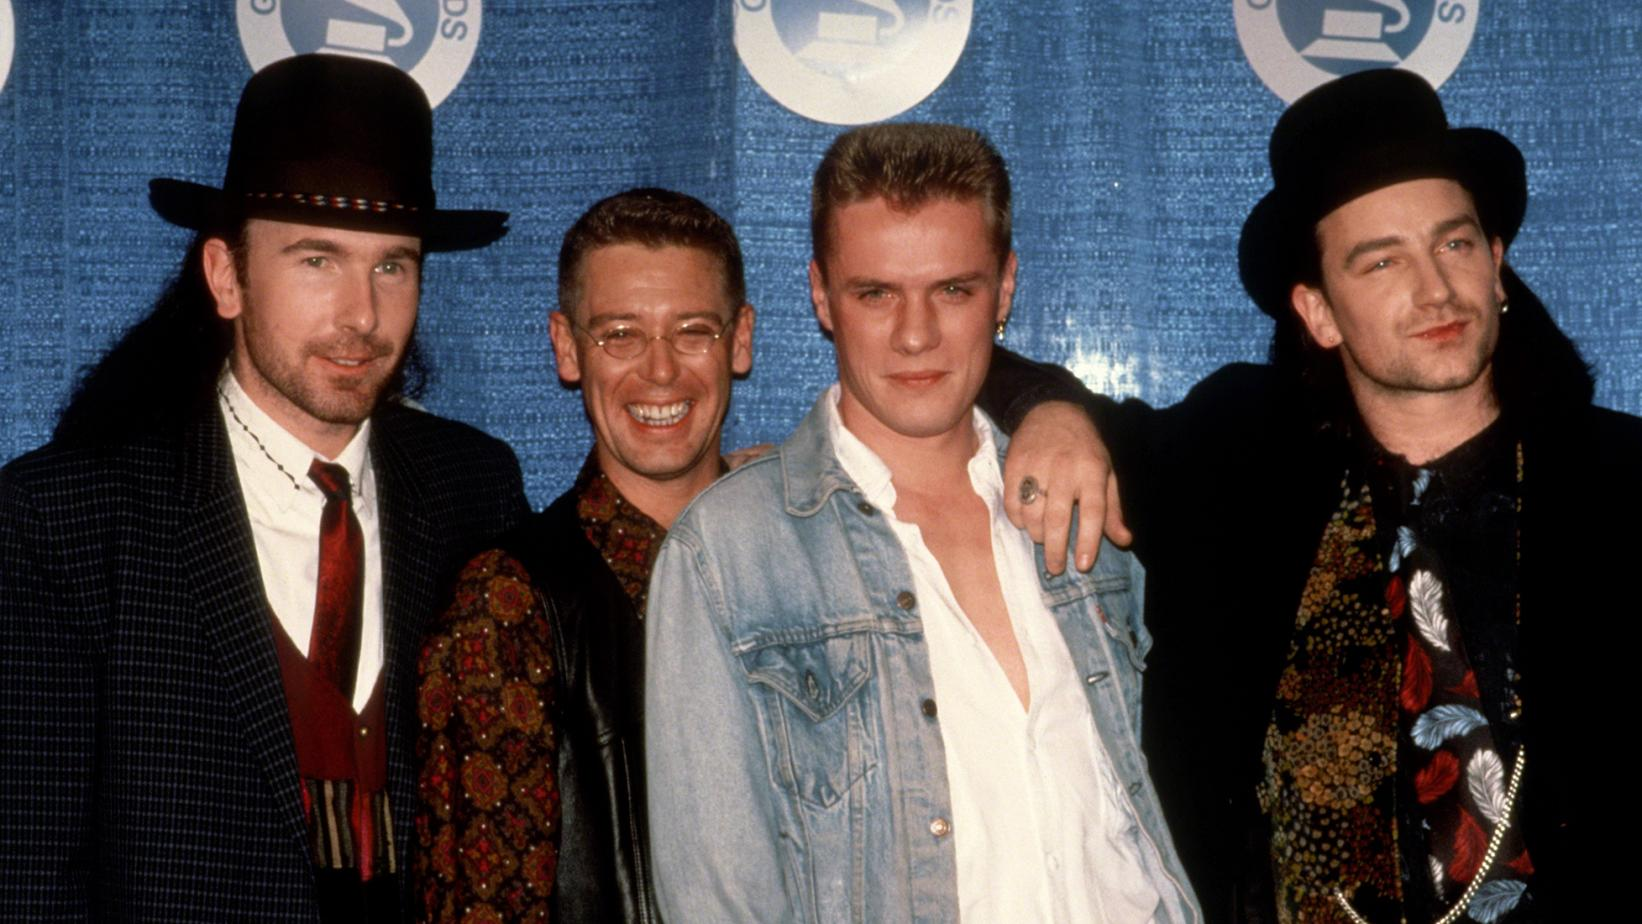 U2 at 1988 GRAMMYs